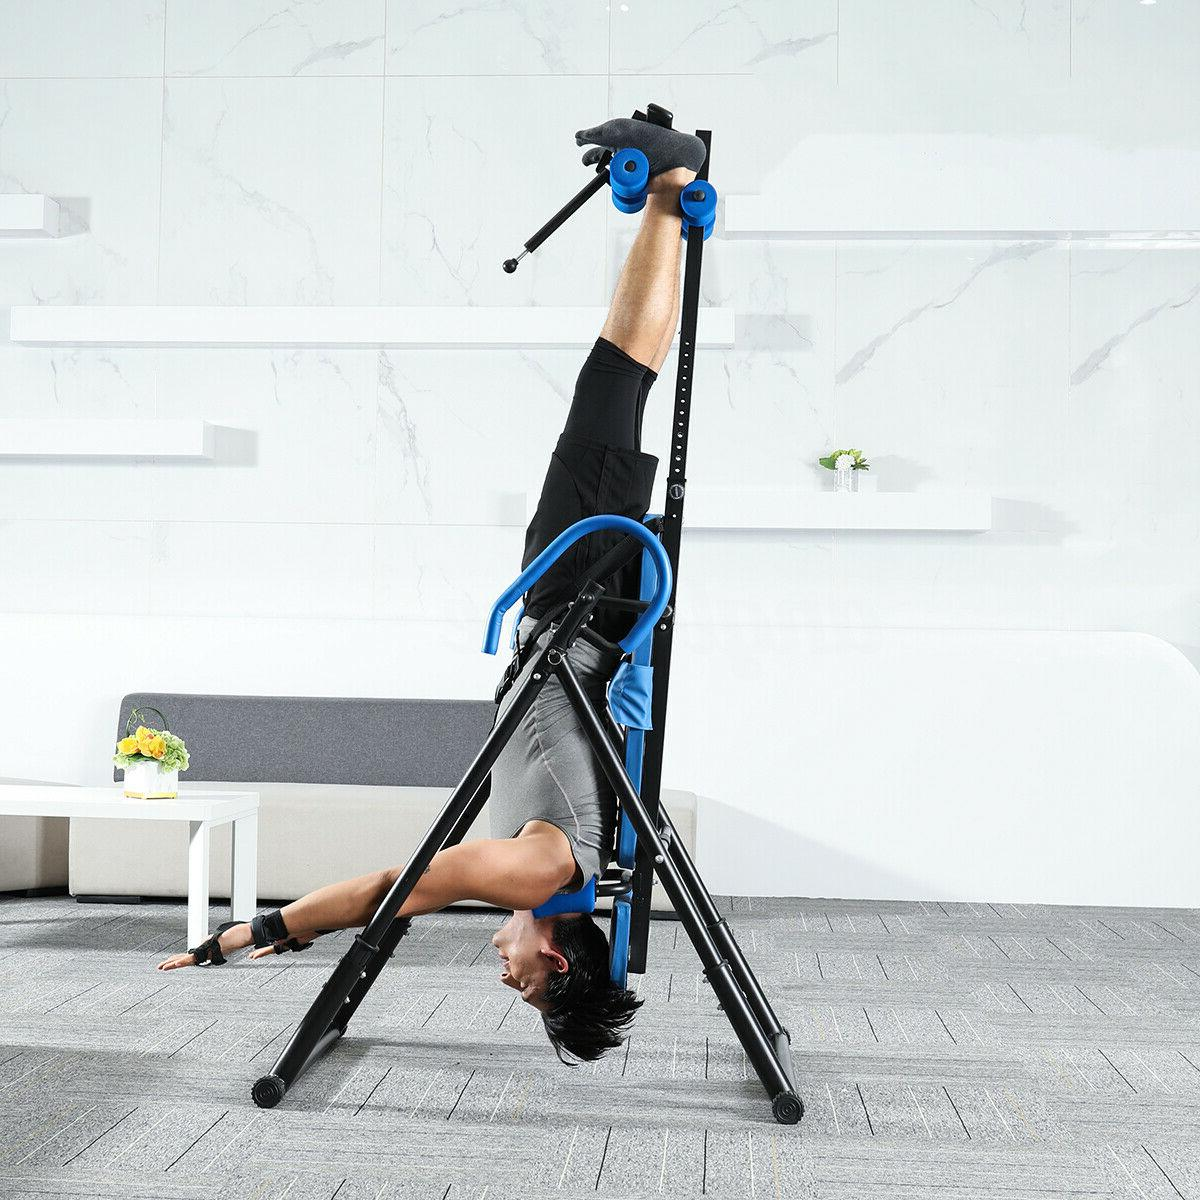 180°Home Folding Fitness Therapy Back